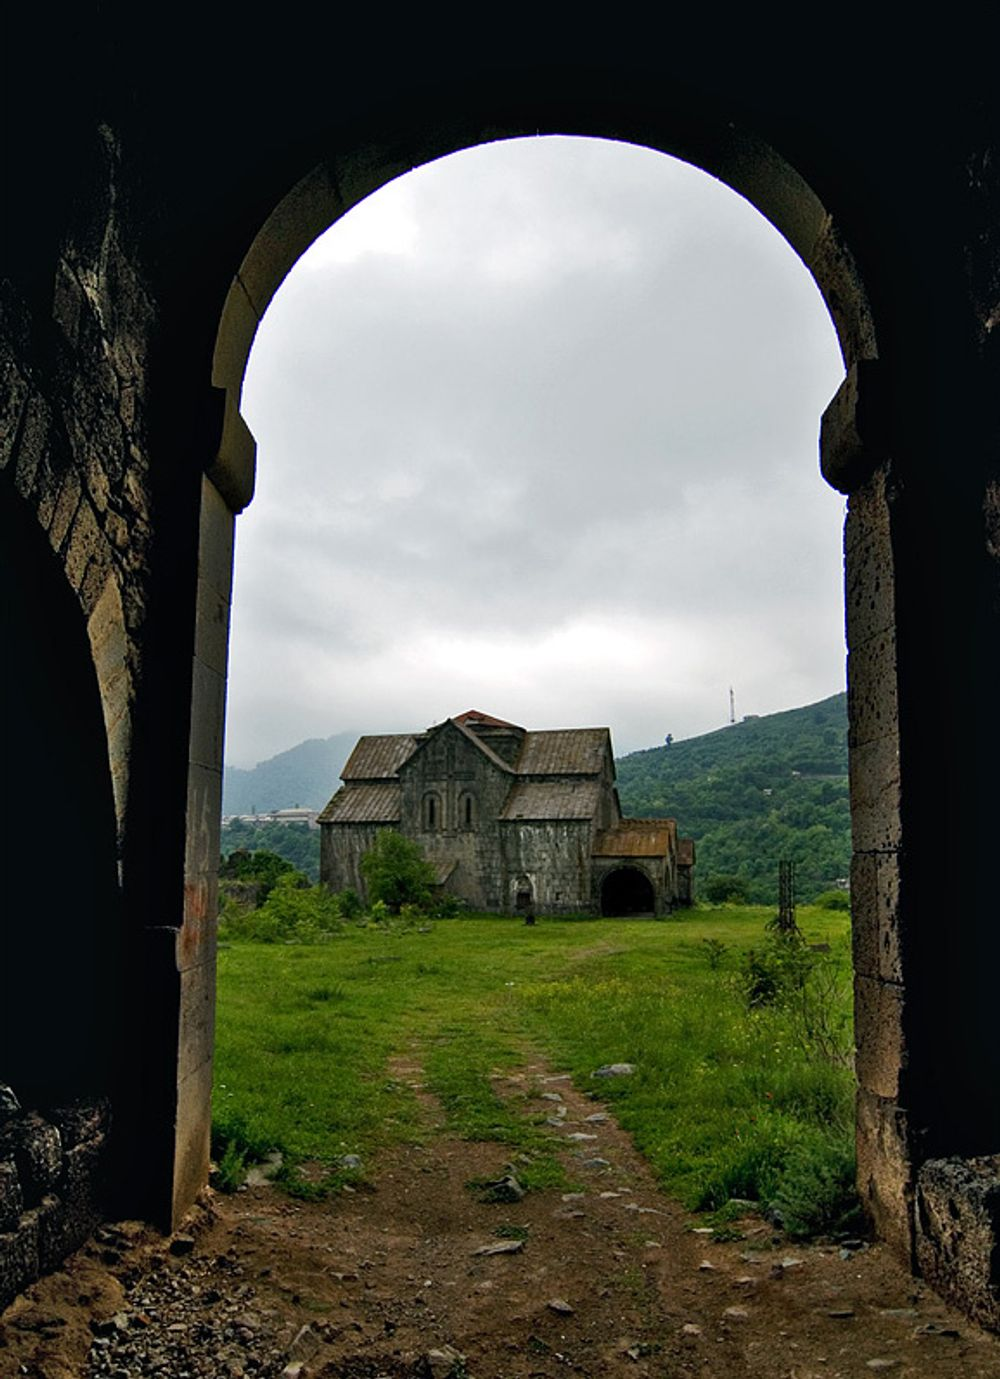 title: Arch of Akhtala Armenia